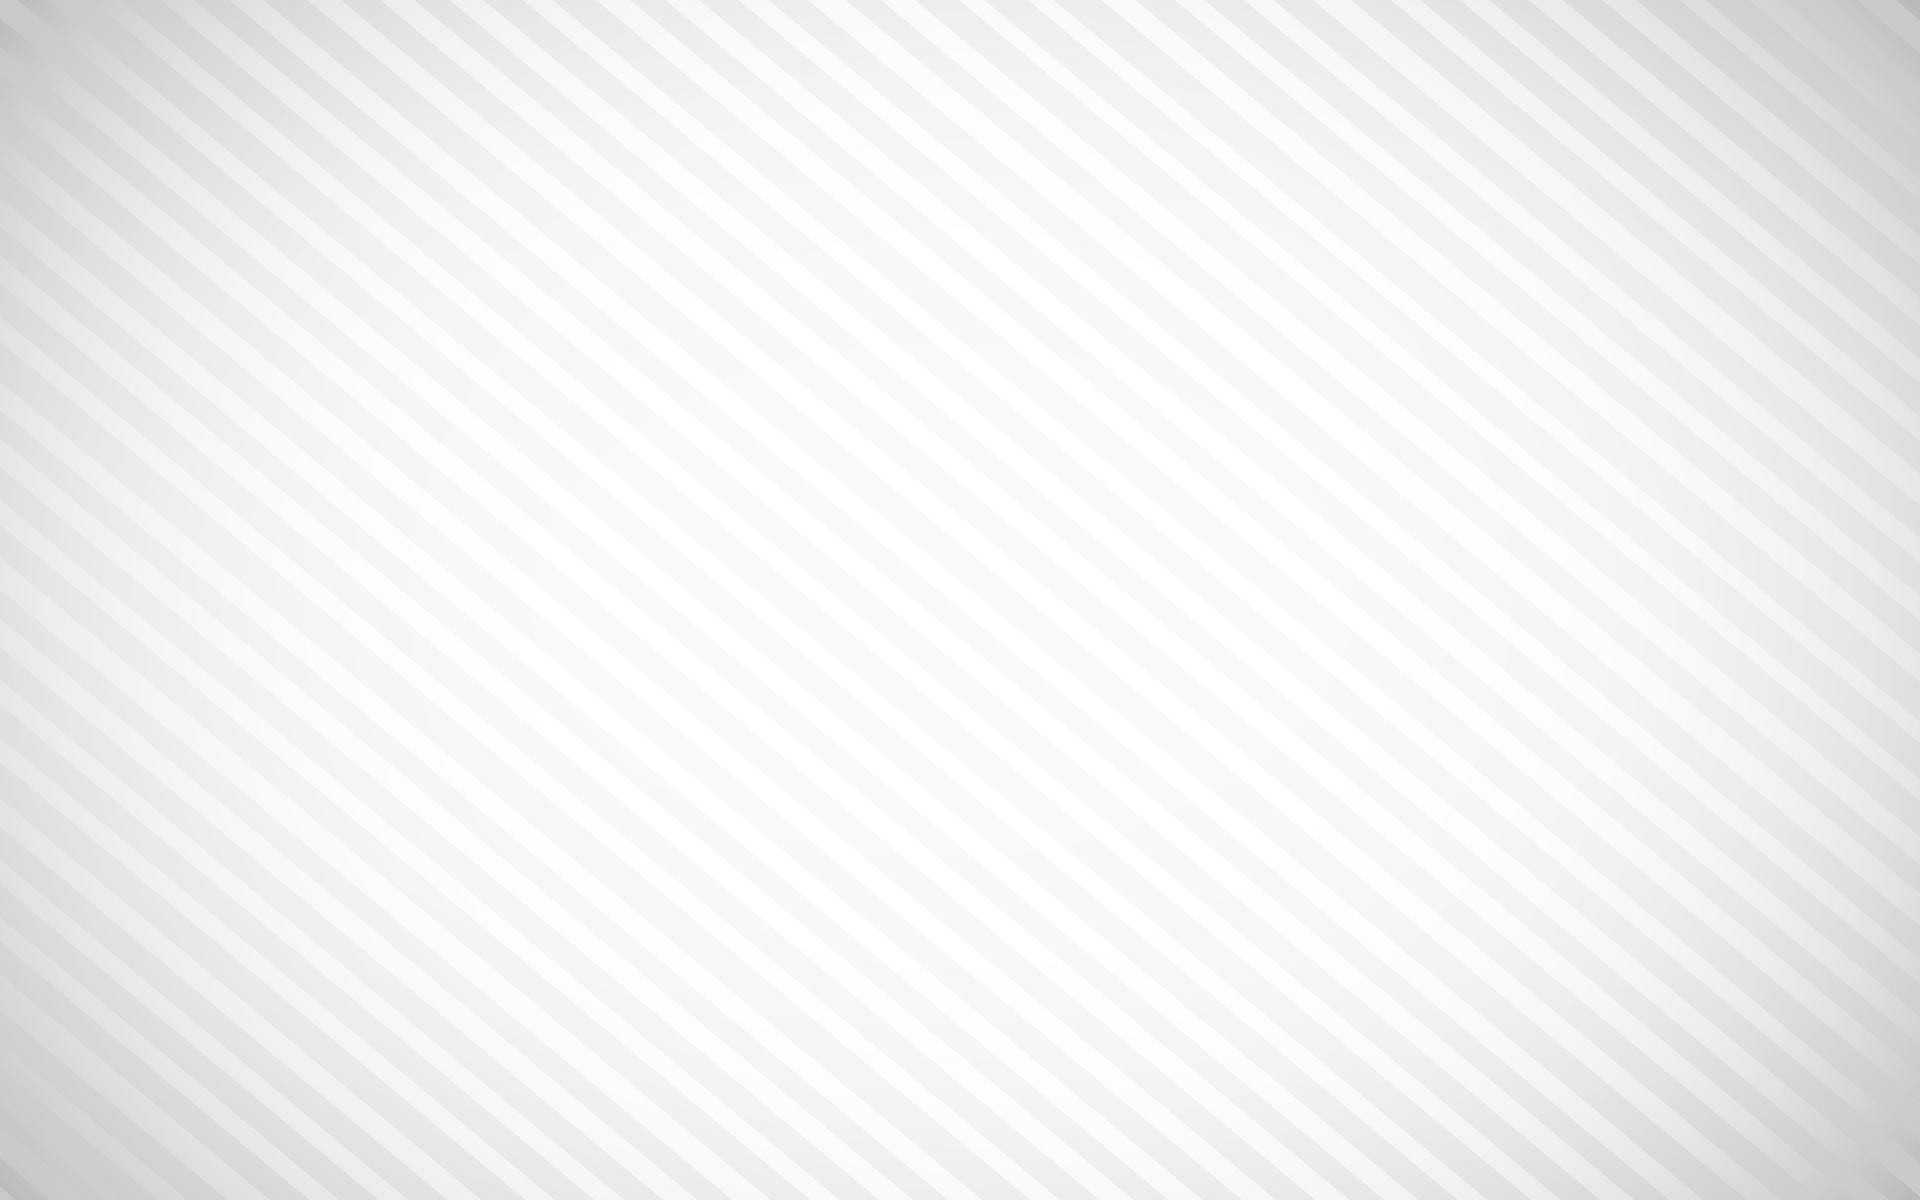 sitewp contentuploads201406White Background Image Wallpaperpng 1920x1200